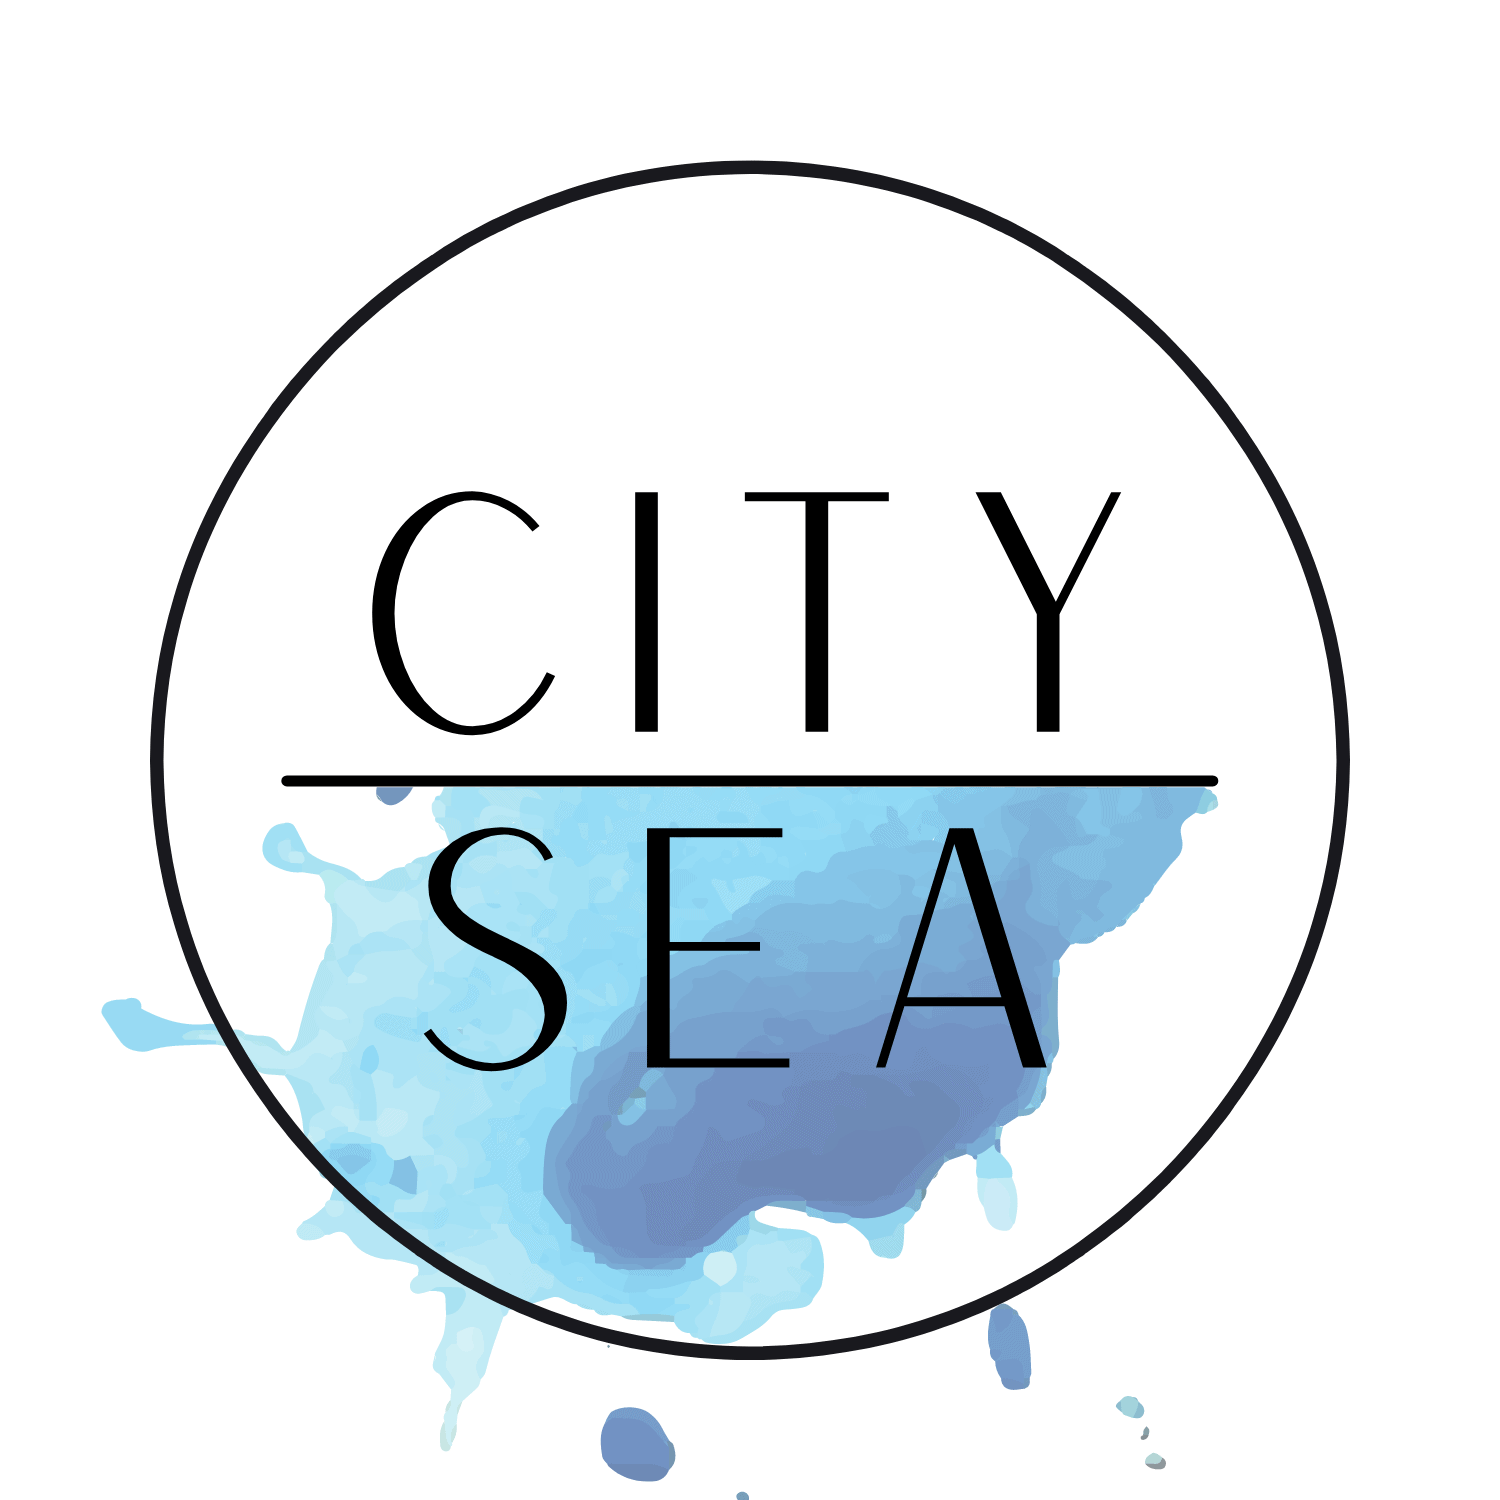 From City 2 Sea